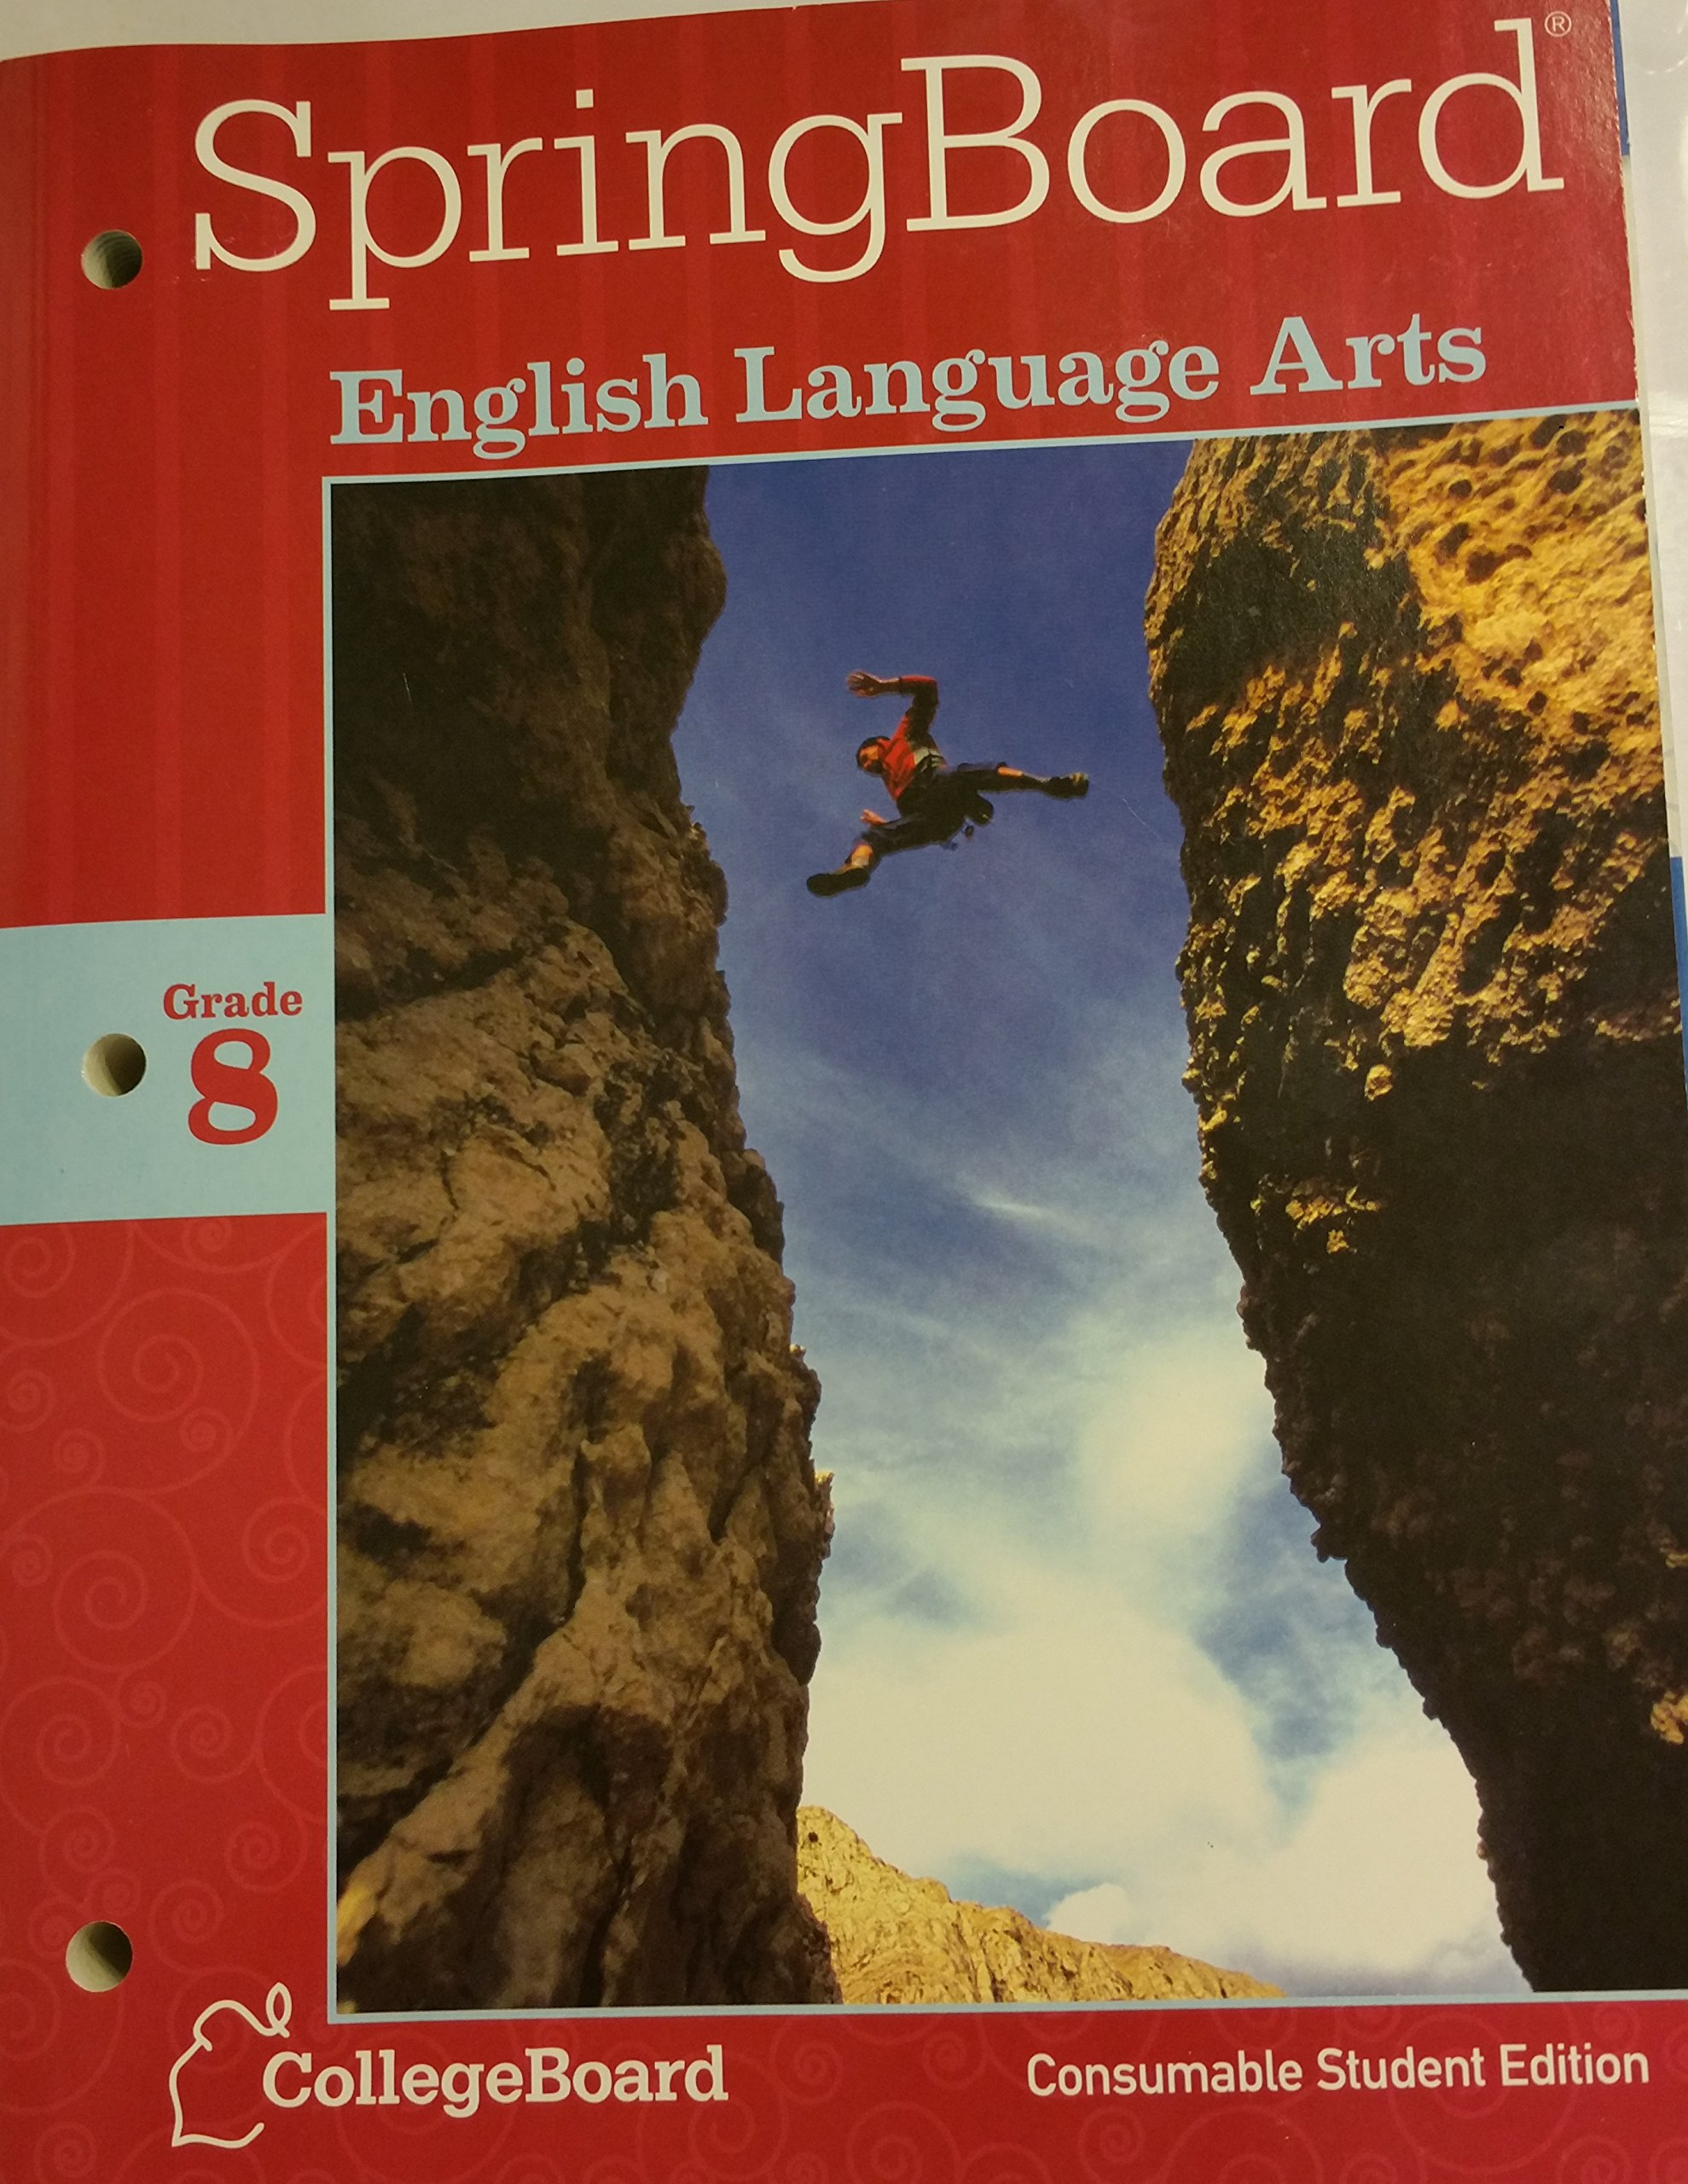 Springboard english language arts grade 8 college board springboard english language arts grade 8 college board 9781457302206 amazon books fandeluxe